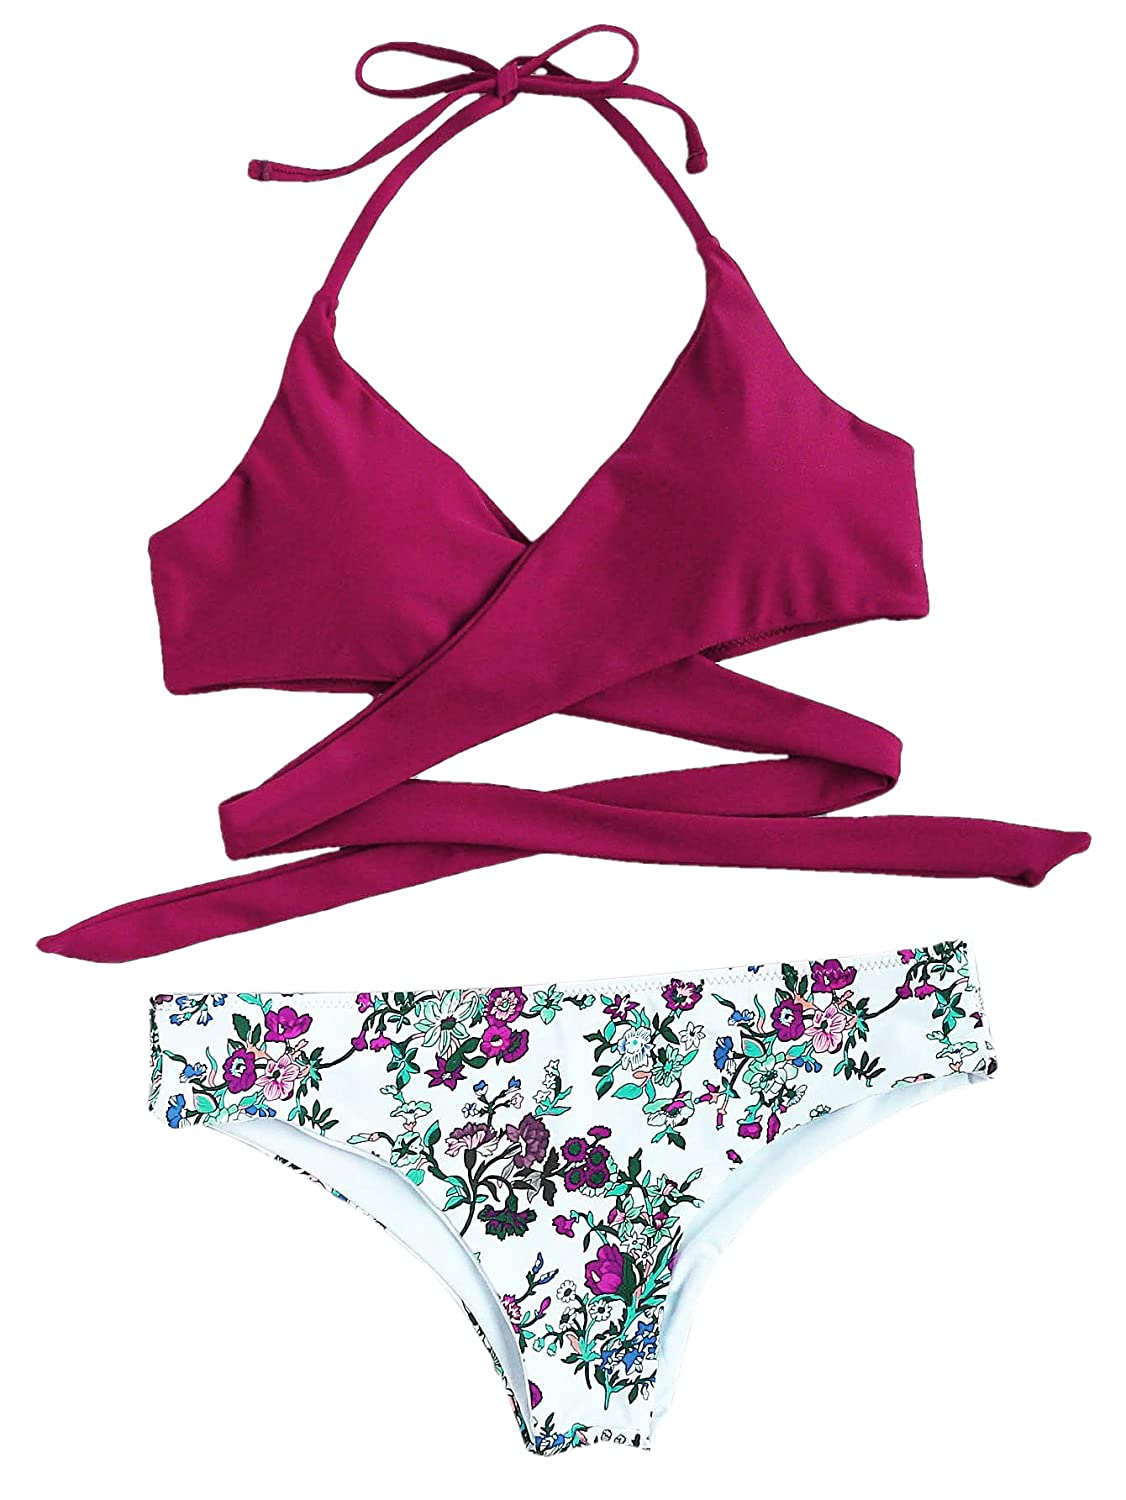 SOLY HUX Women's Floral Halter Wrap Knotted Back Bikini Set Burgundy L